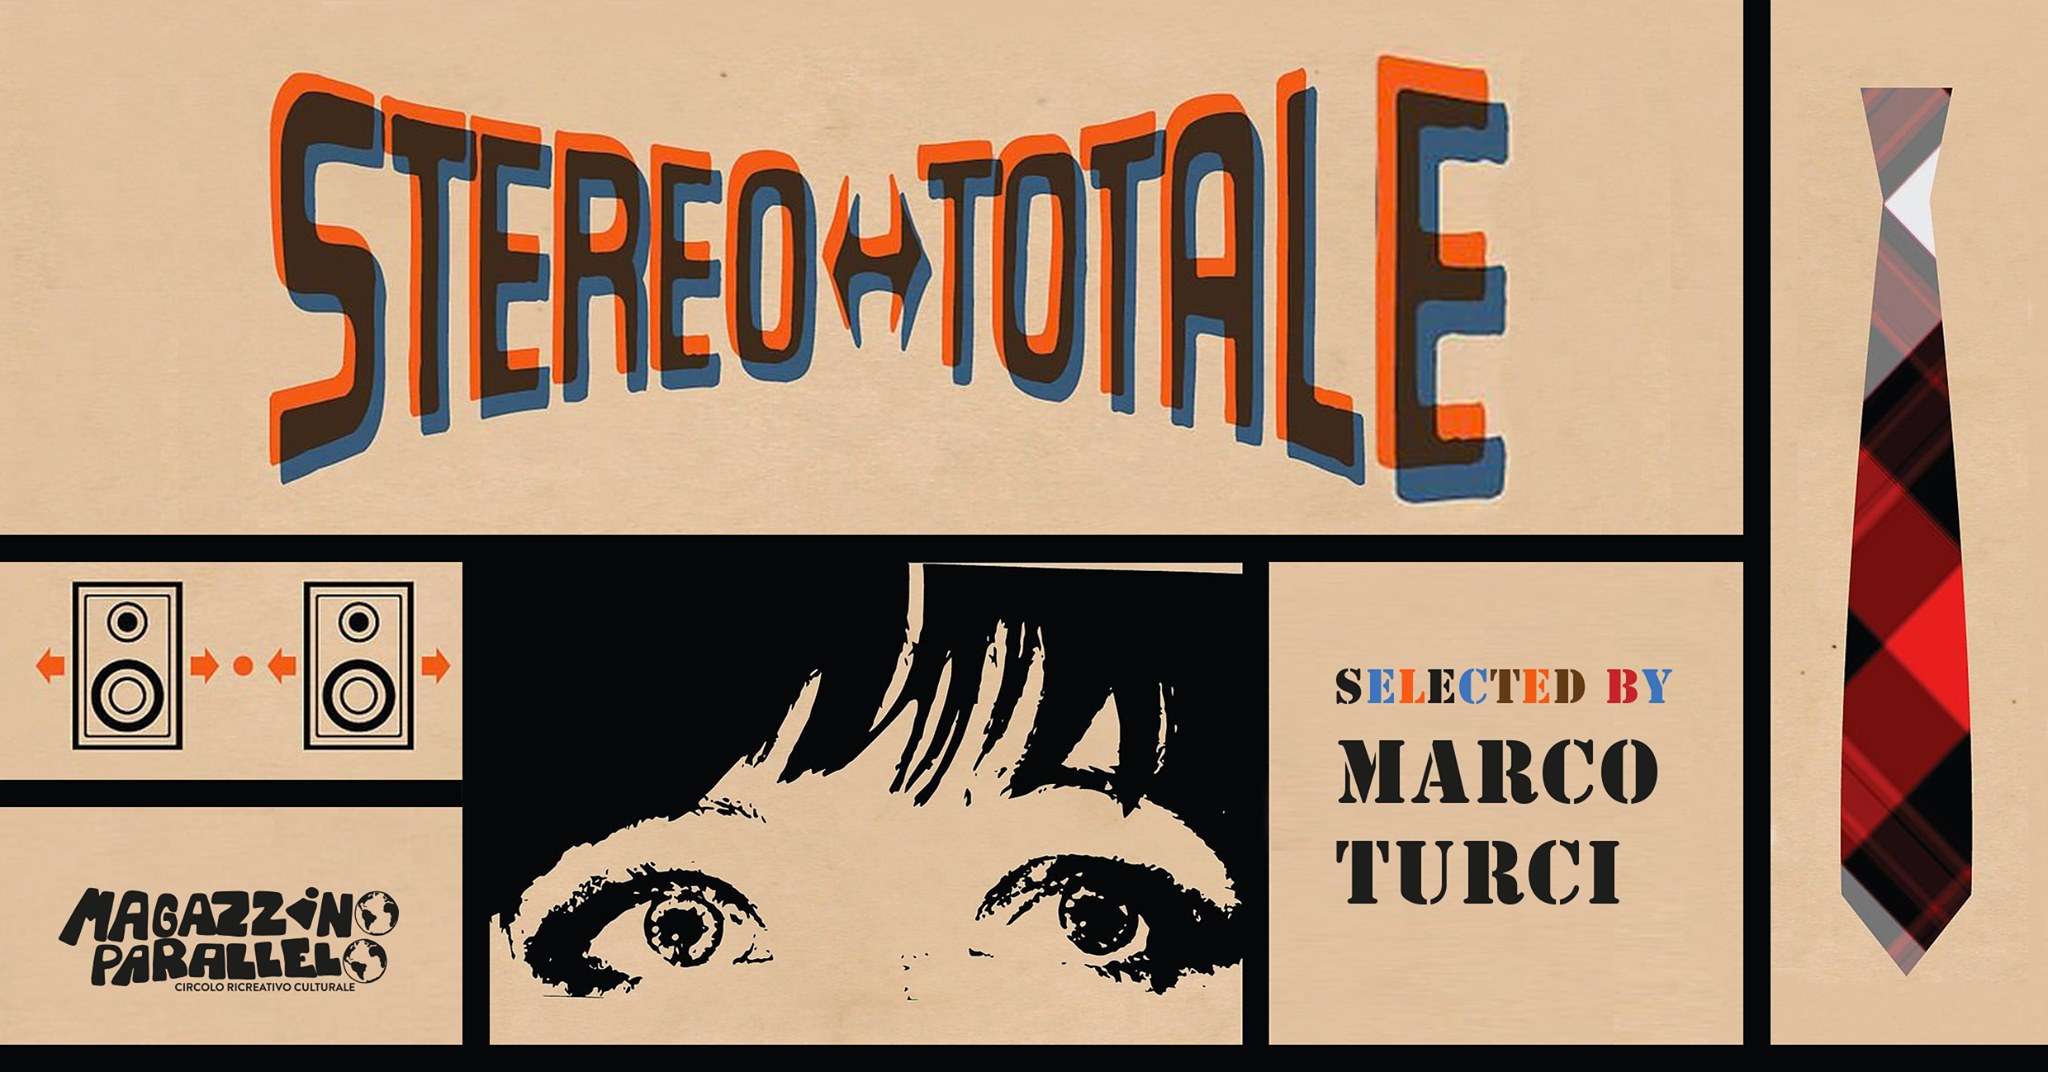 Stereo Totale // at Magazzino Parallelo